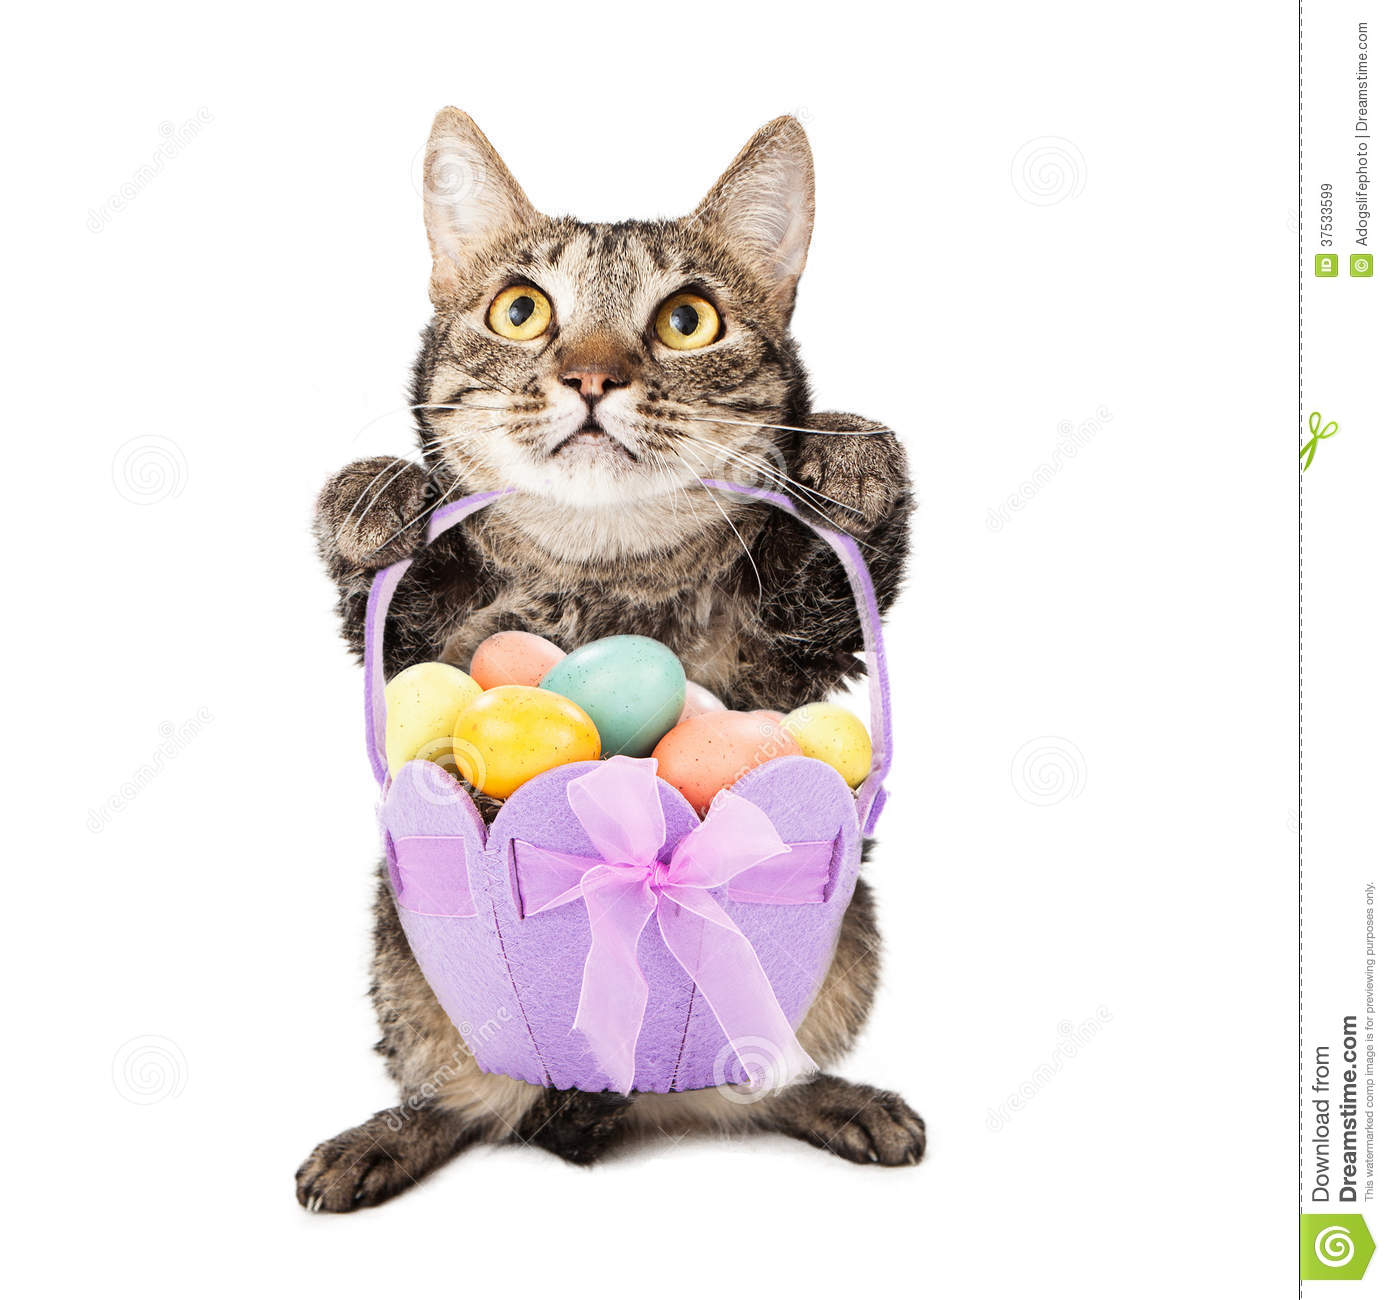 how to cook eggs for cats